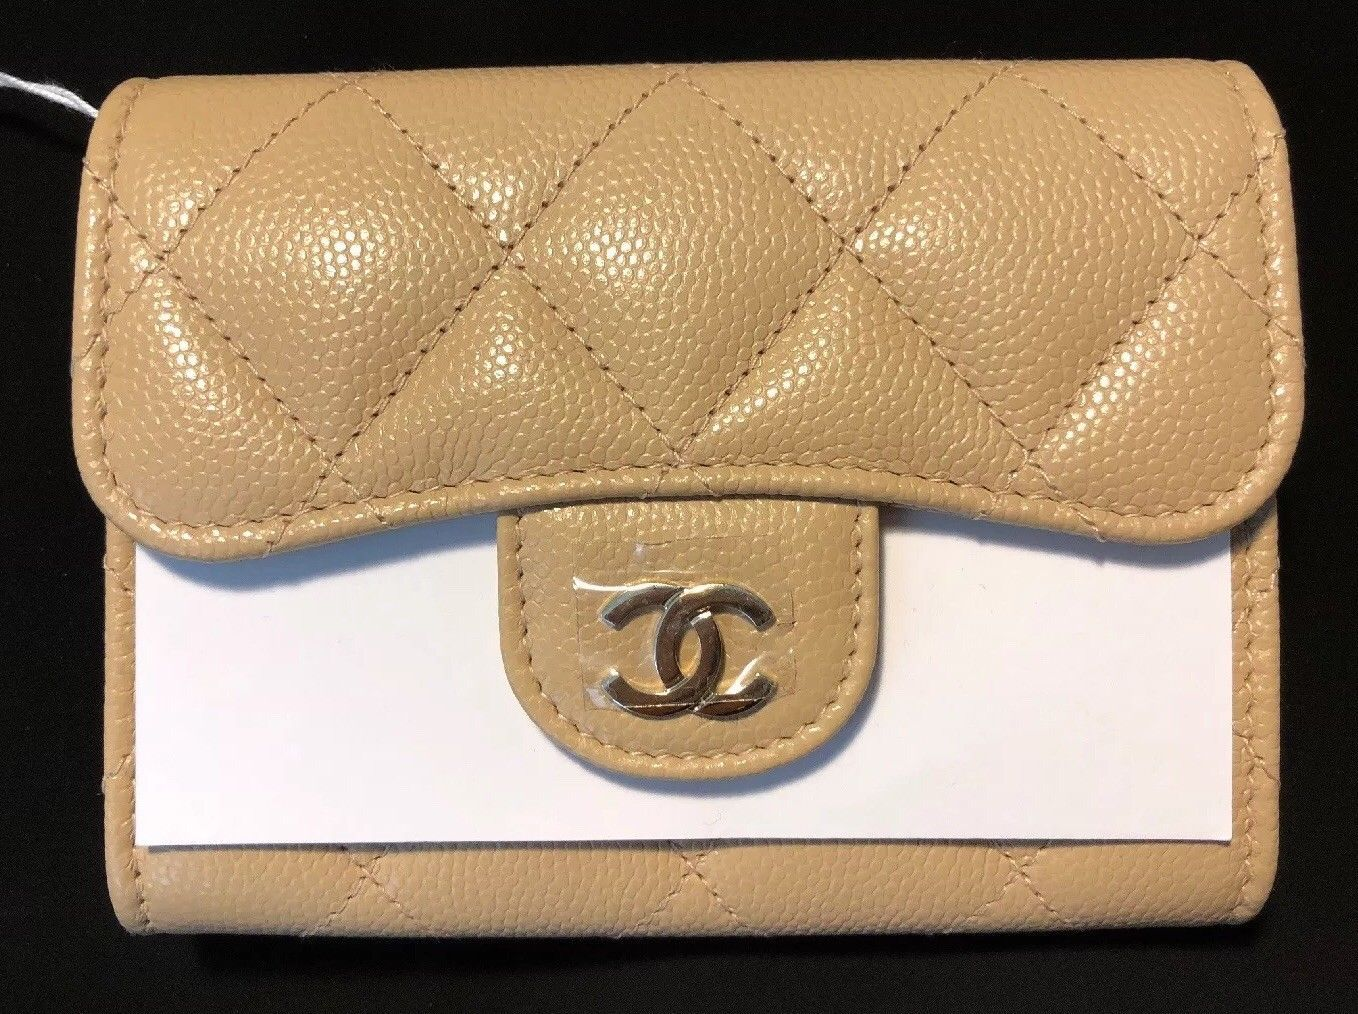 caced85ad505 NEW Chanel Caviar Coin XL Purse Card Holder Back Pocket Beige Gold Hardware  GHW | eBay